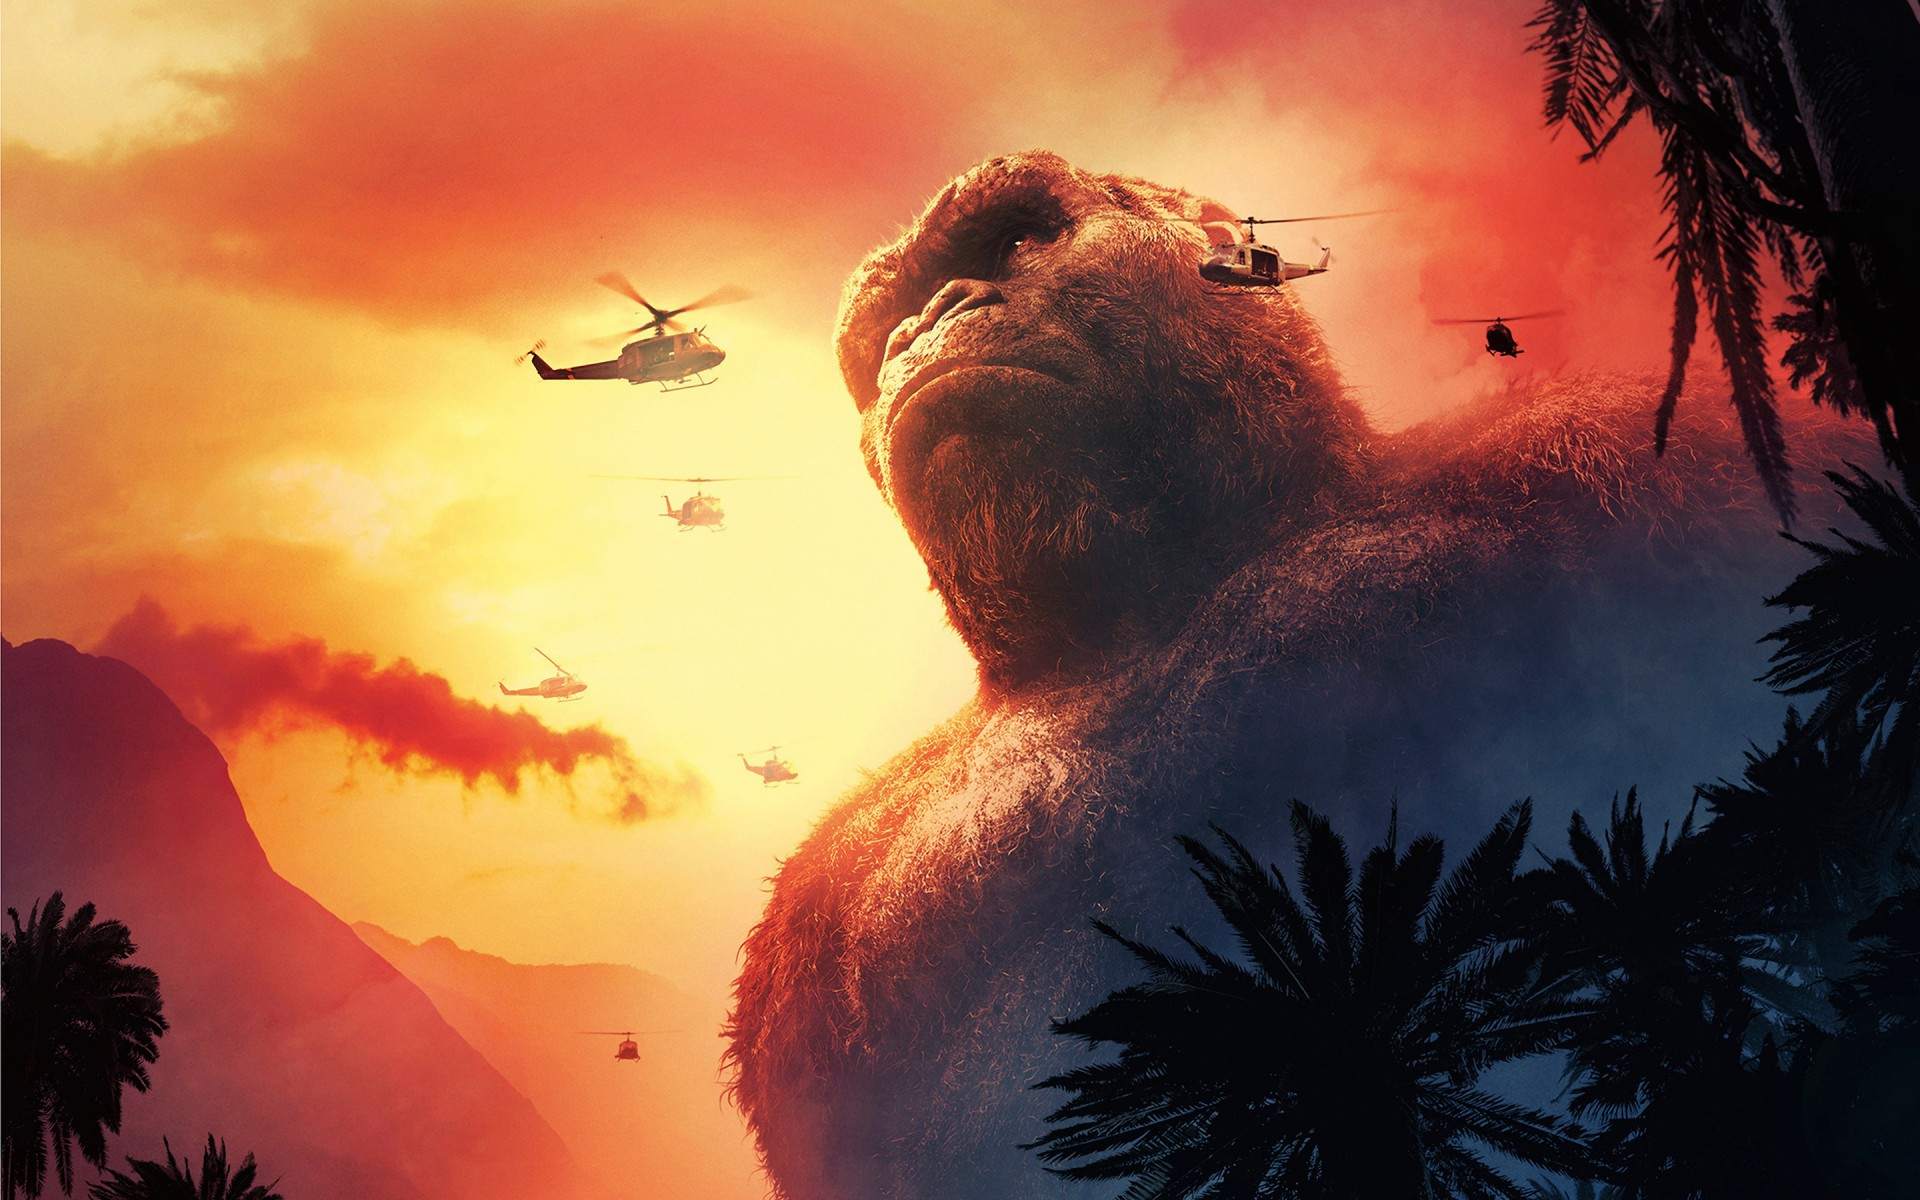 Full Hd Wallpapers For Iphone 4 Kong Skull Island 4k 2017 Wallpapers Hd Wallpapers Id